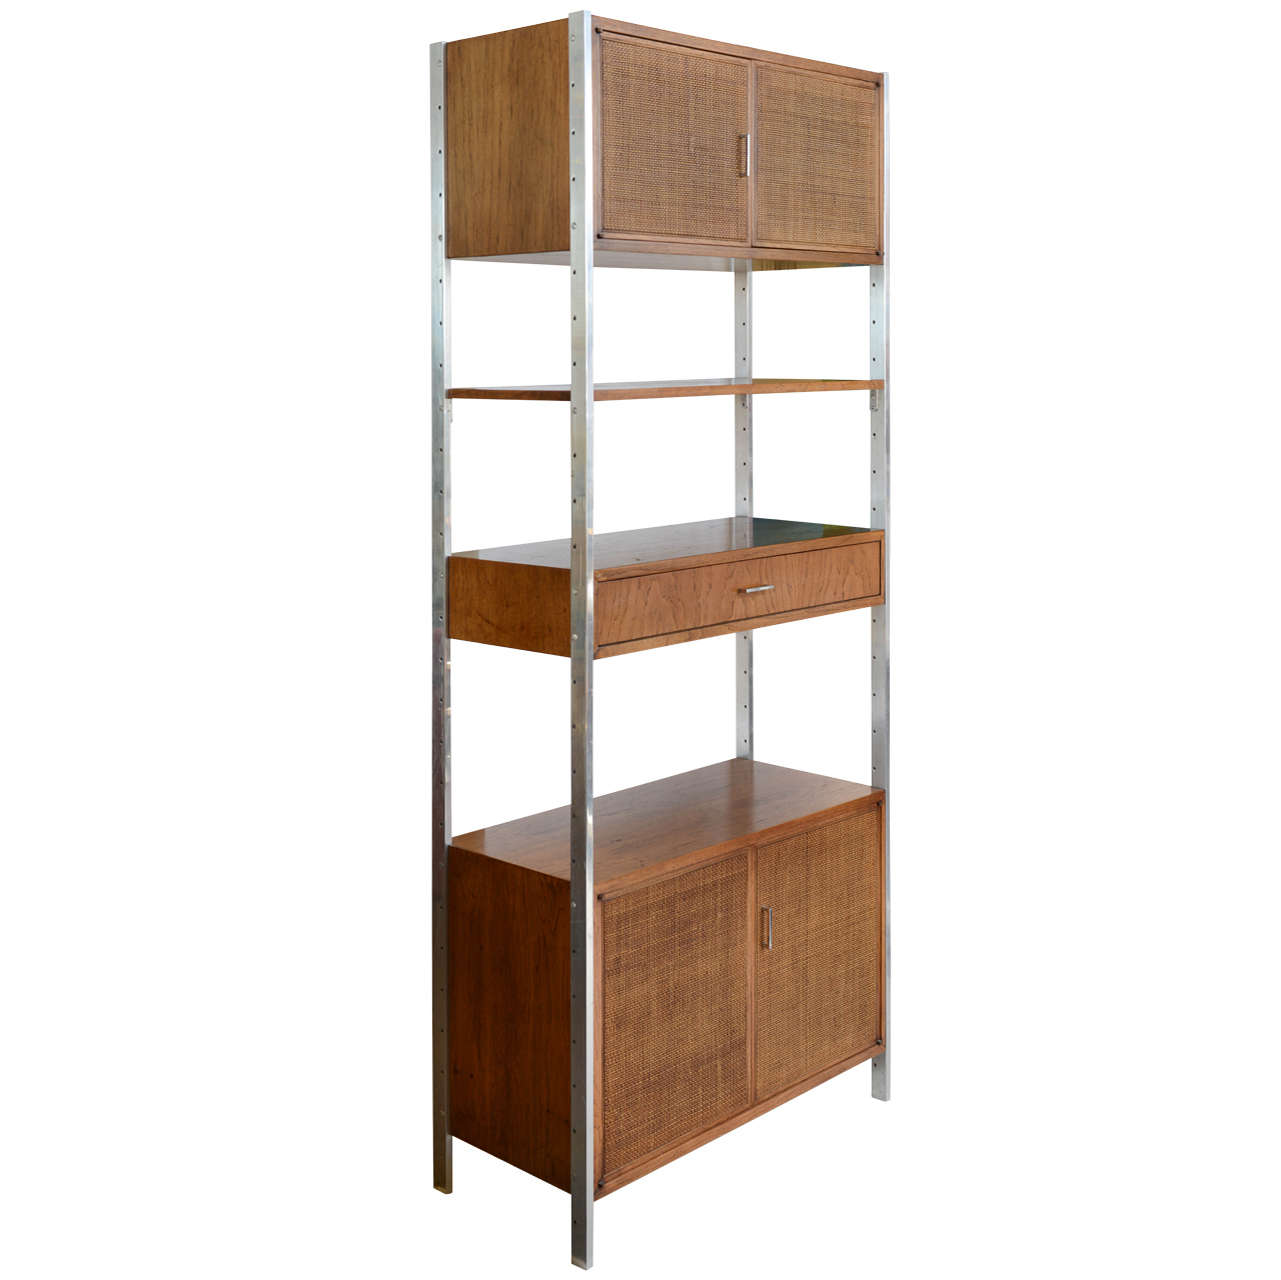 Tall Cabinet Freestanding Mid Century Eames Era For Sale